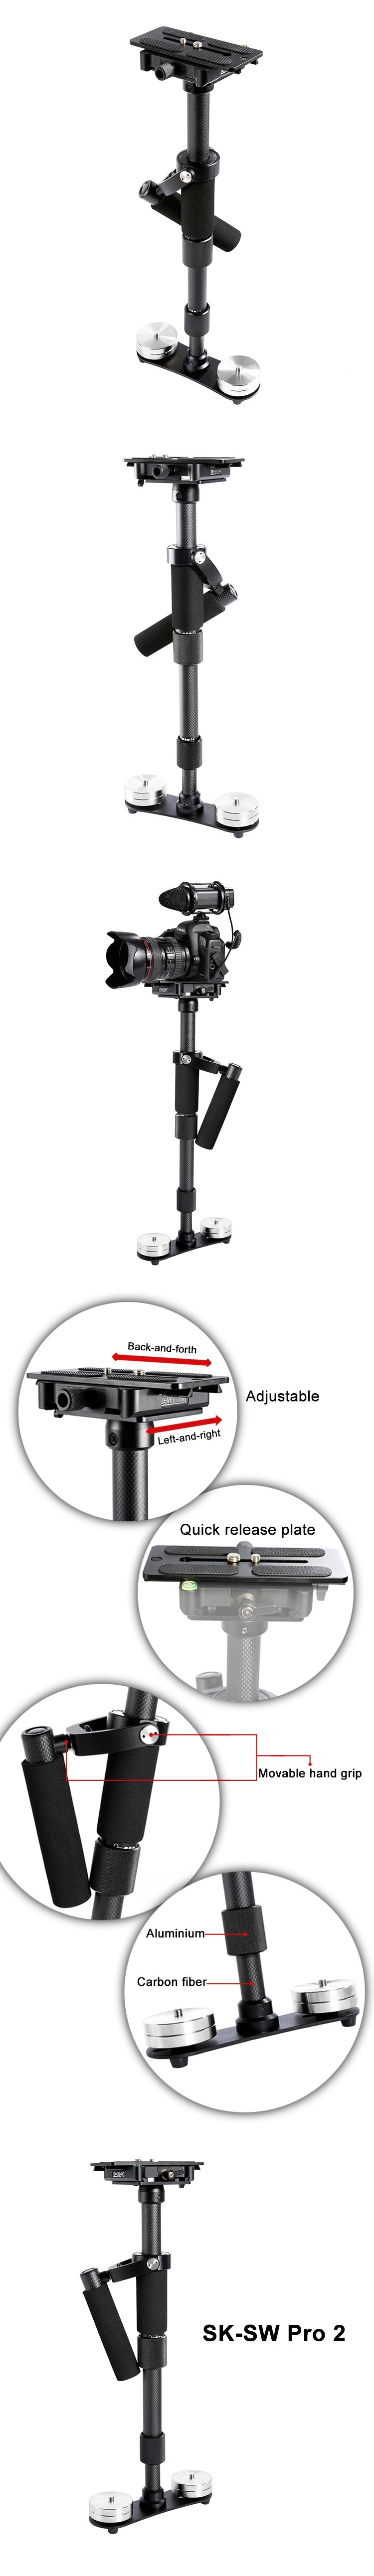 genesis-steadycam-pro-carbon-dslr-video-stabilizator